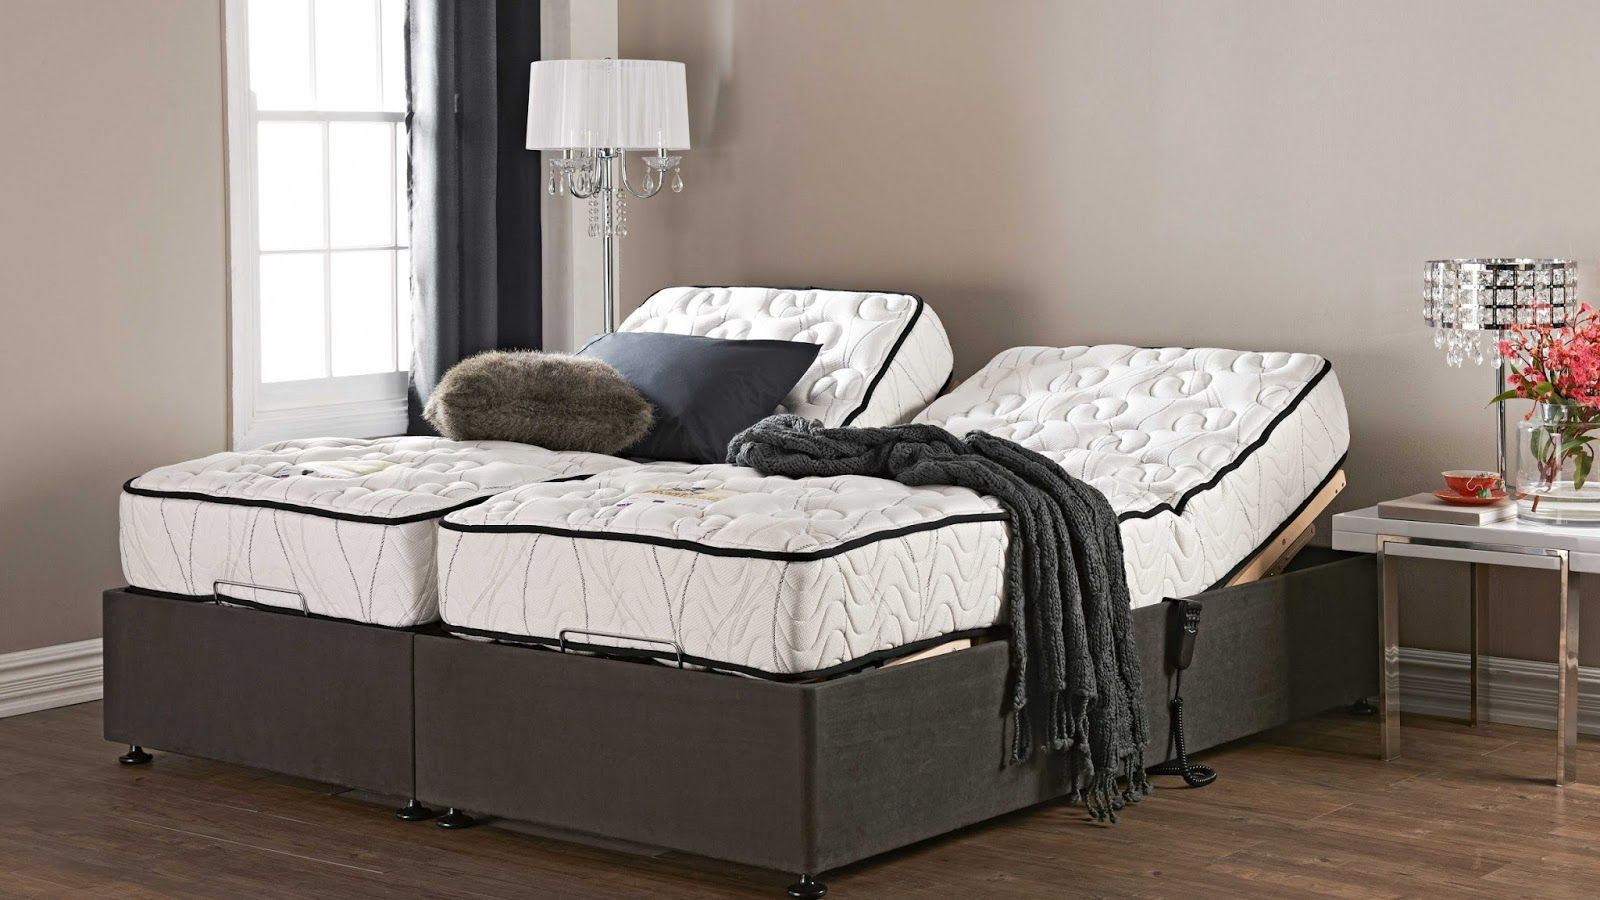 Mattress Split King Adjustable Bed Frame With Nightstand